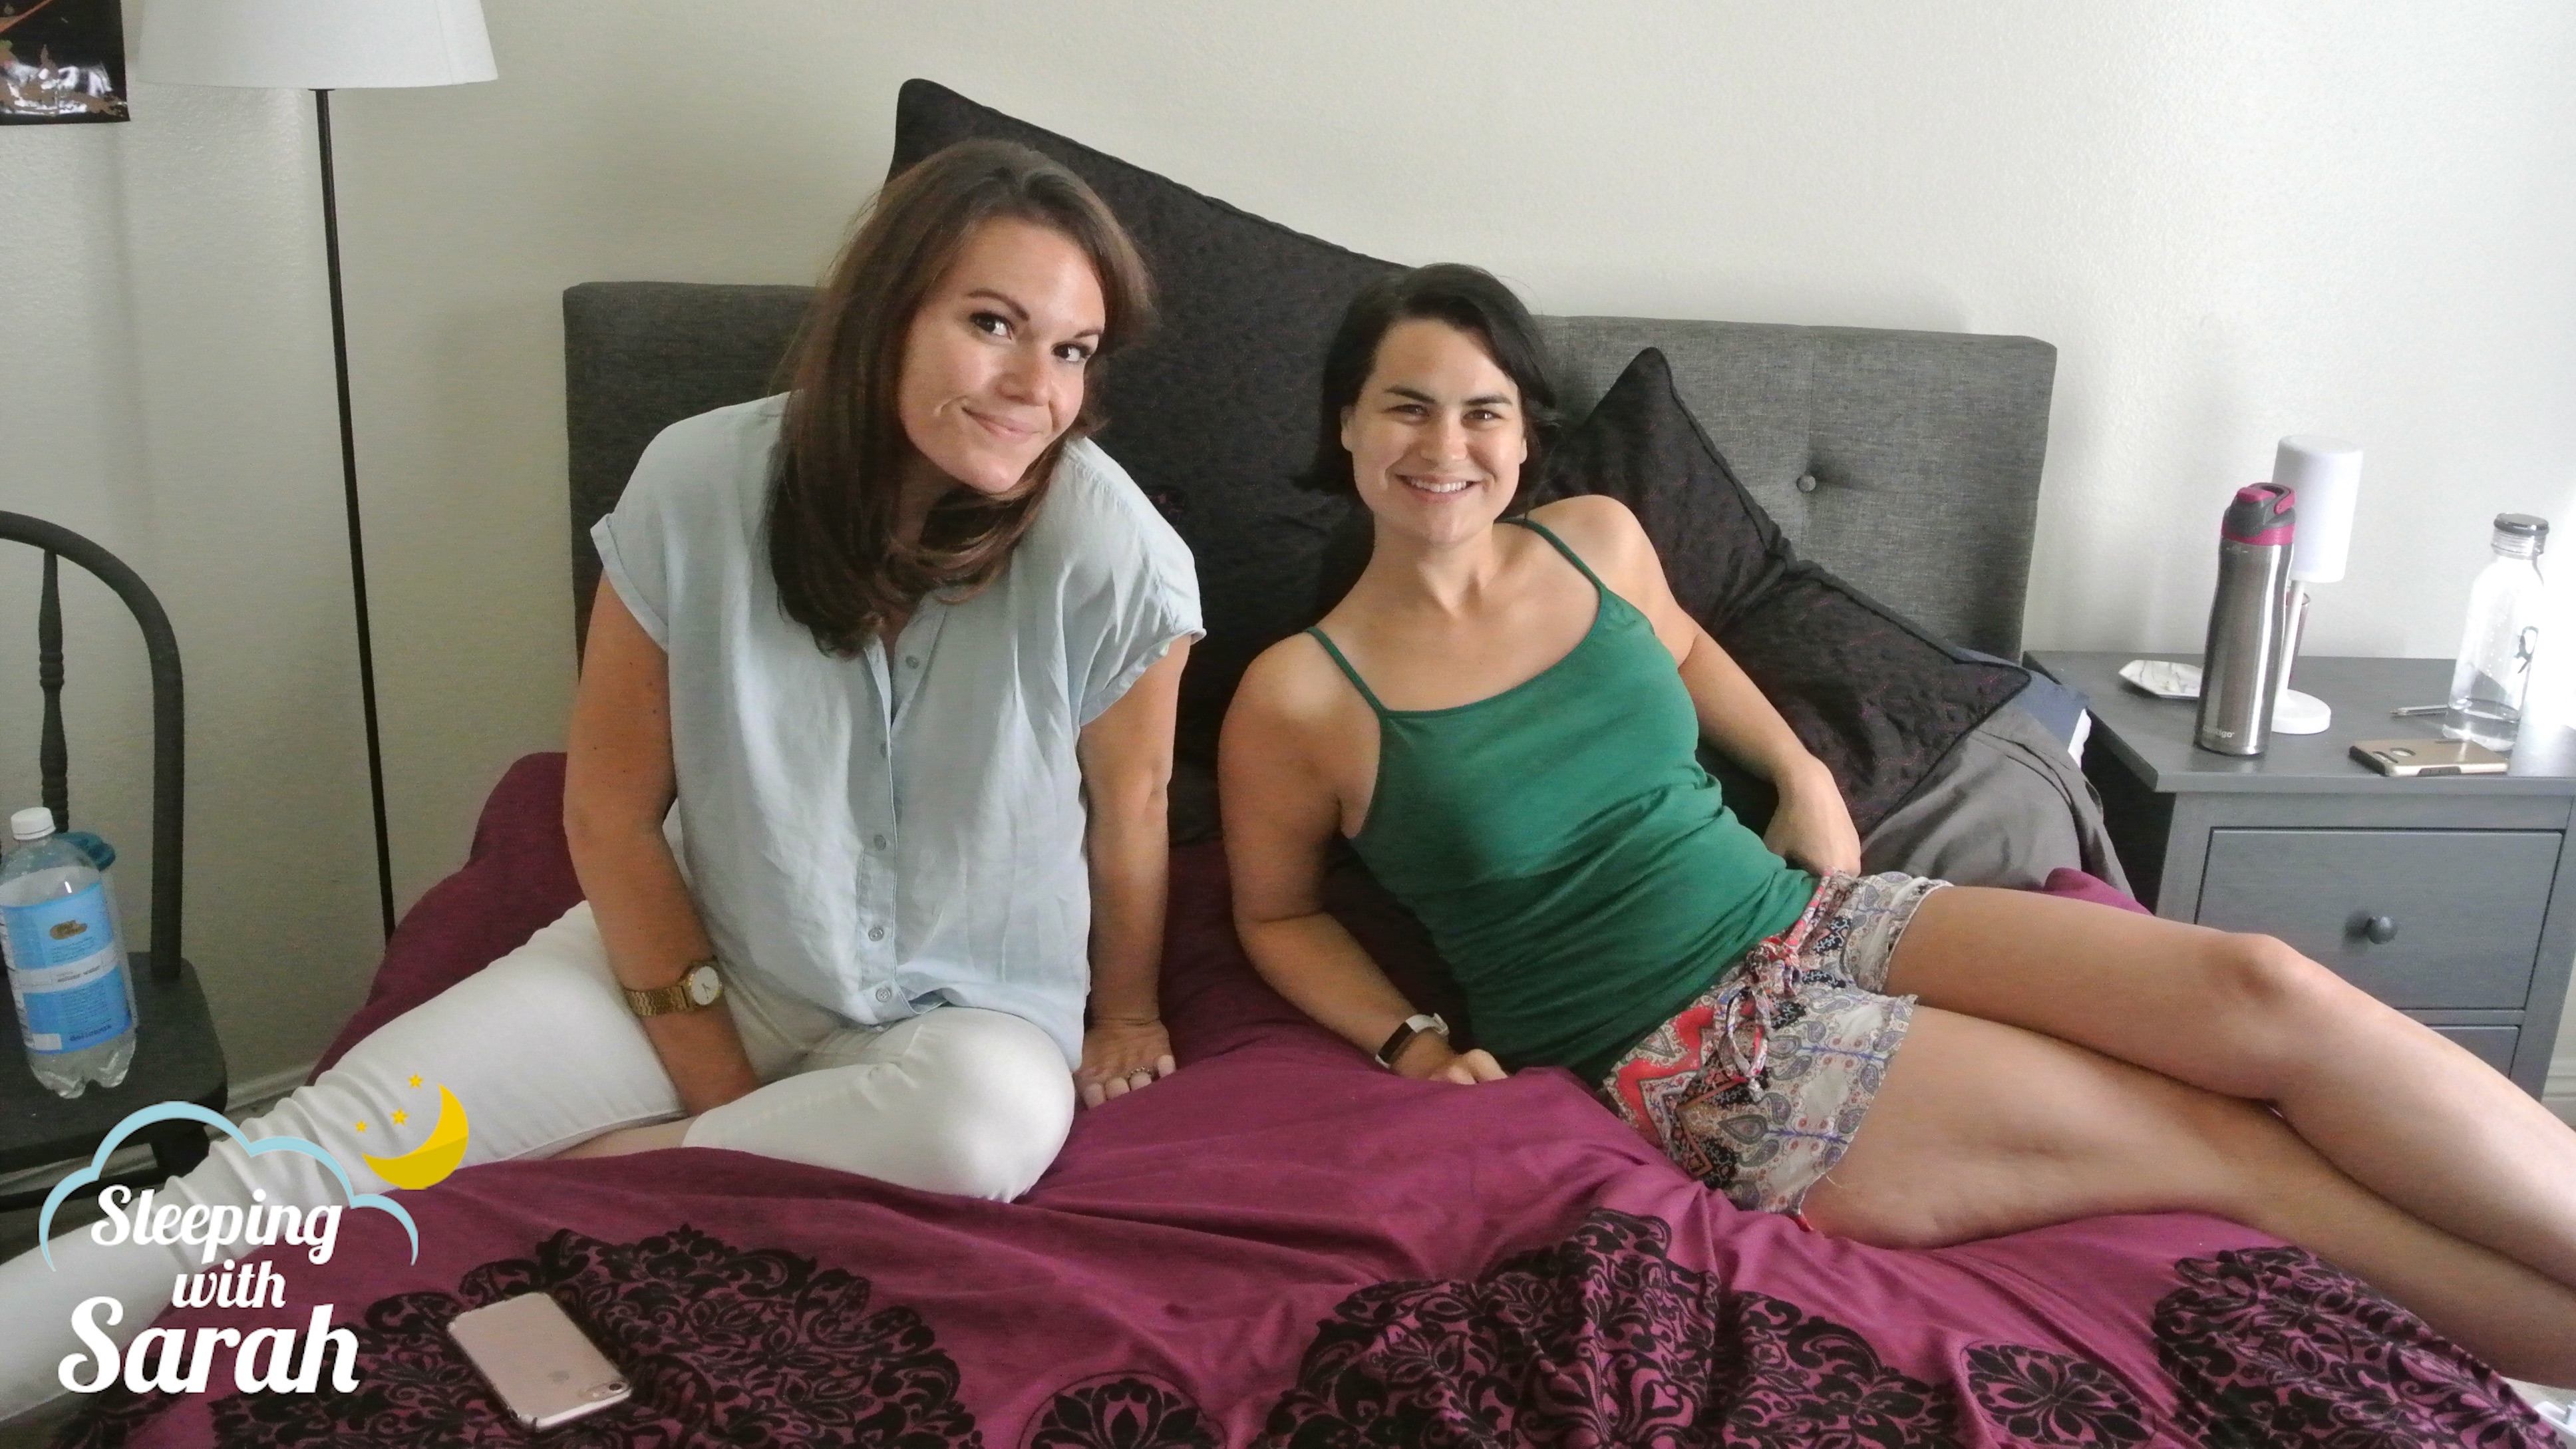 Rachel LaForce and Sarah Albritton Sleeping with Sarah Ep 85